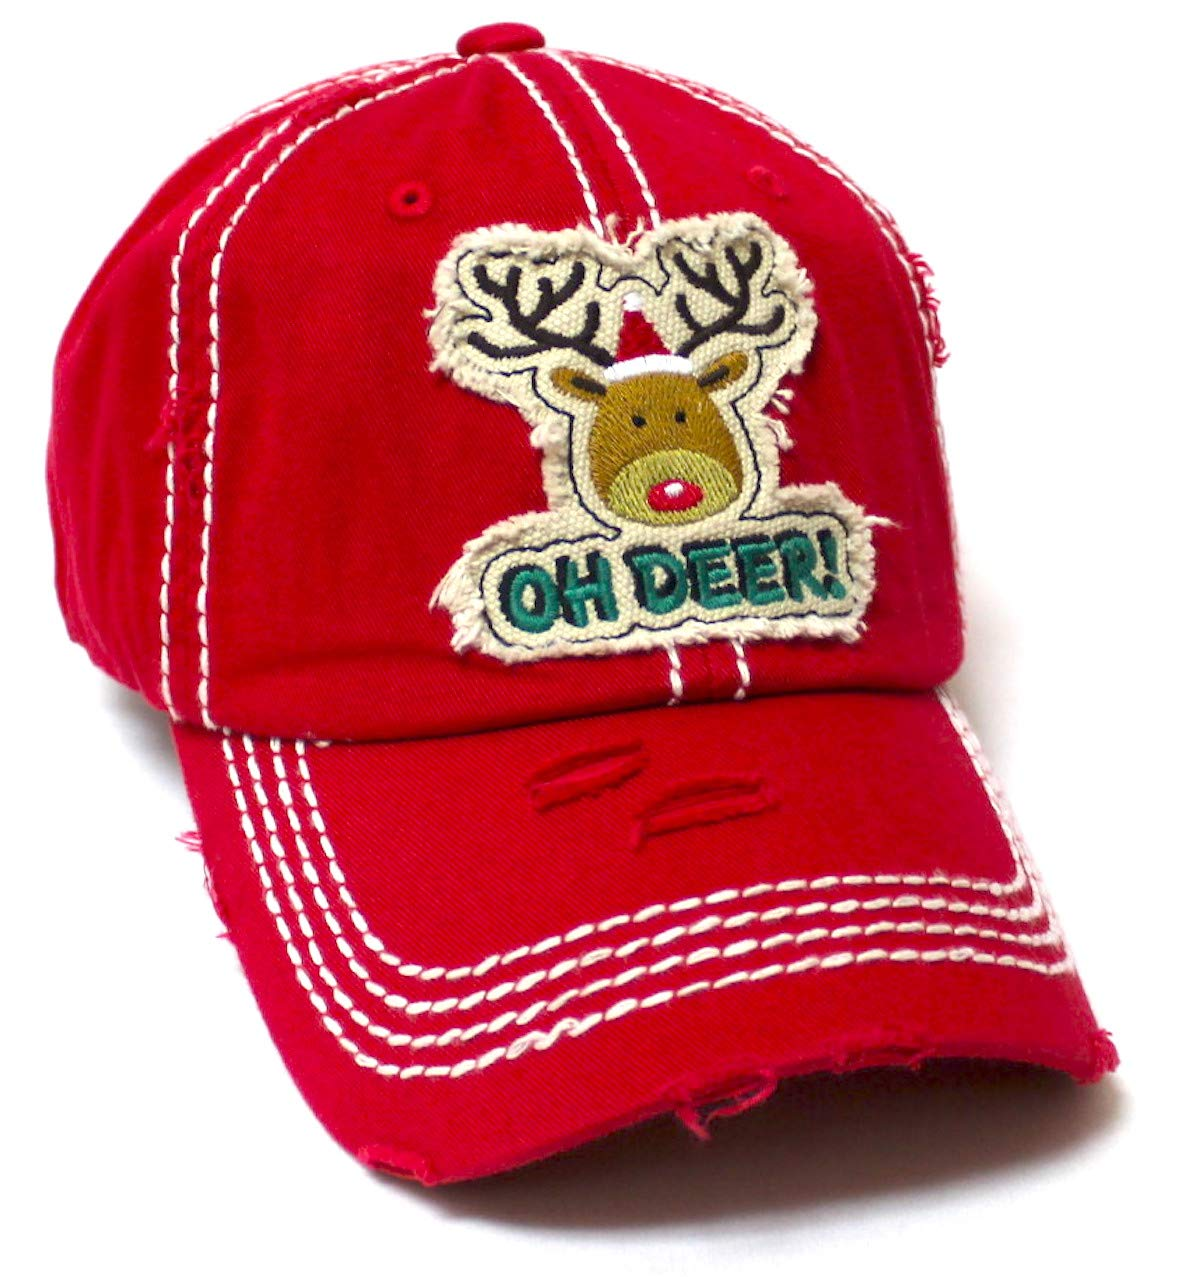 Women's Christmas Baseball Cap Oh Deer! Winter Reindeer w/Santa Claus Hat Patch Embroidery Monogram Hat, Merry Christmas Red